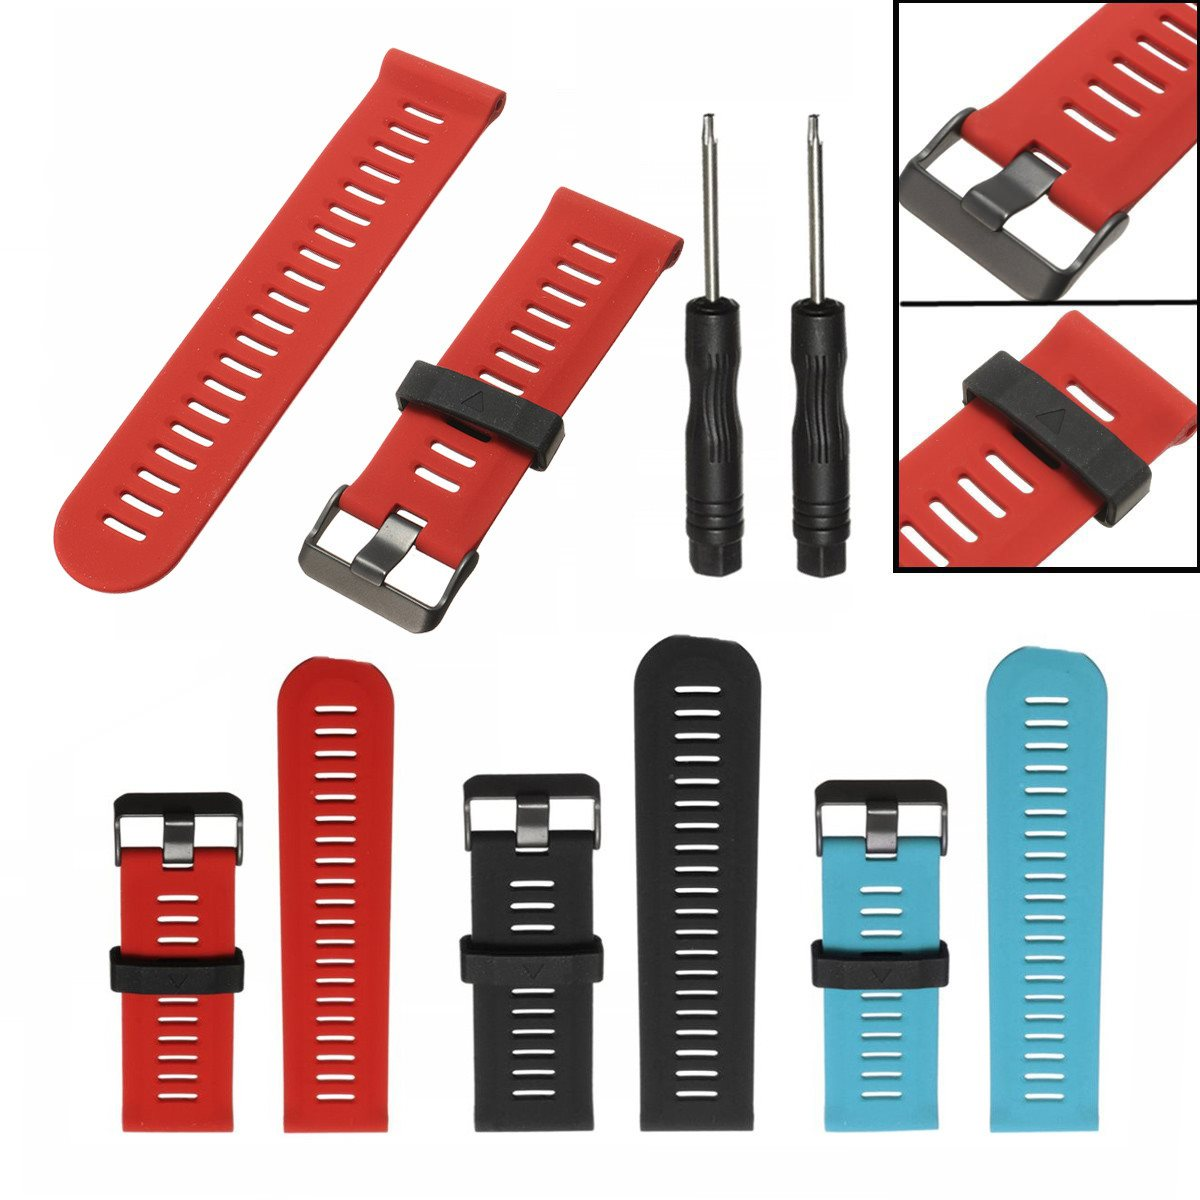 26mm Width Colorful Outdoor Sport Silicone Wrist Strap Replacement Watchband With Tools For Garmin Fenix 3 Watch Accessories rear wheel hub for mazda 3 bk 2003 2008 bbm2 26 15xa bbm2 26 15xb bp4k 26 15xa bp4k 26 15xb bp4k 26 15xc bp4k 26 15xd